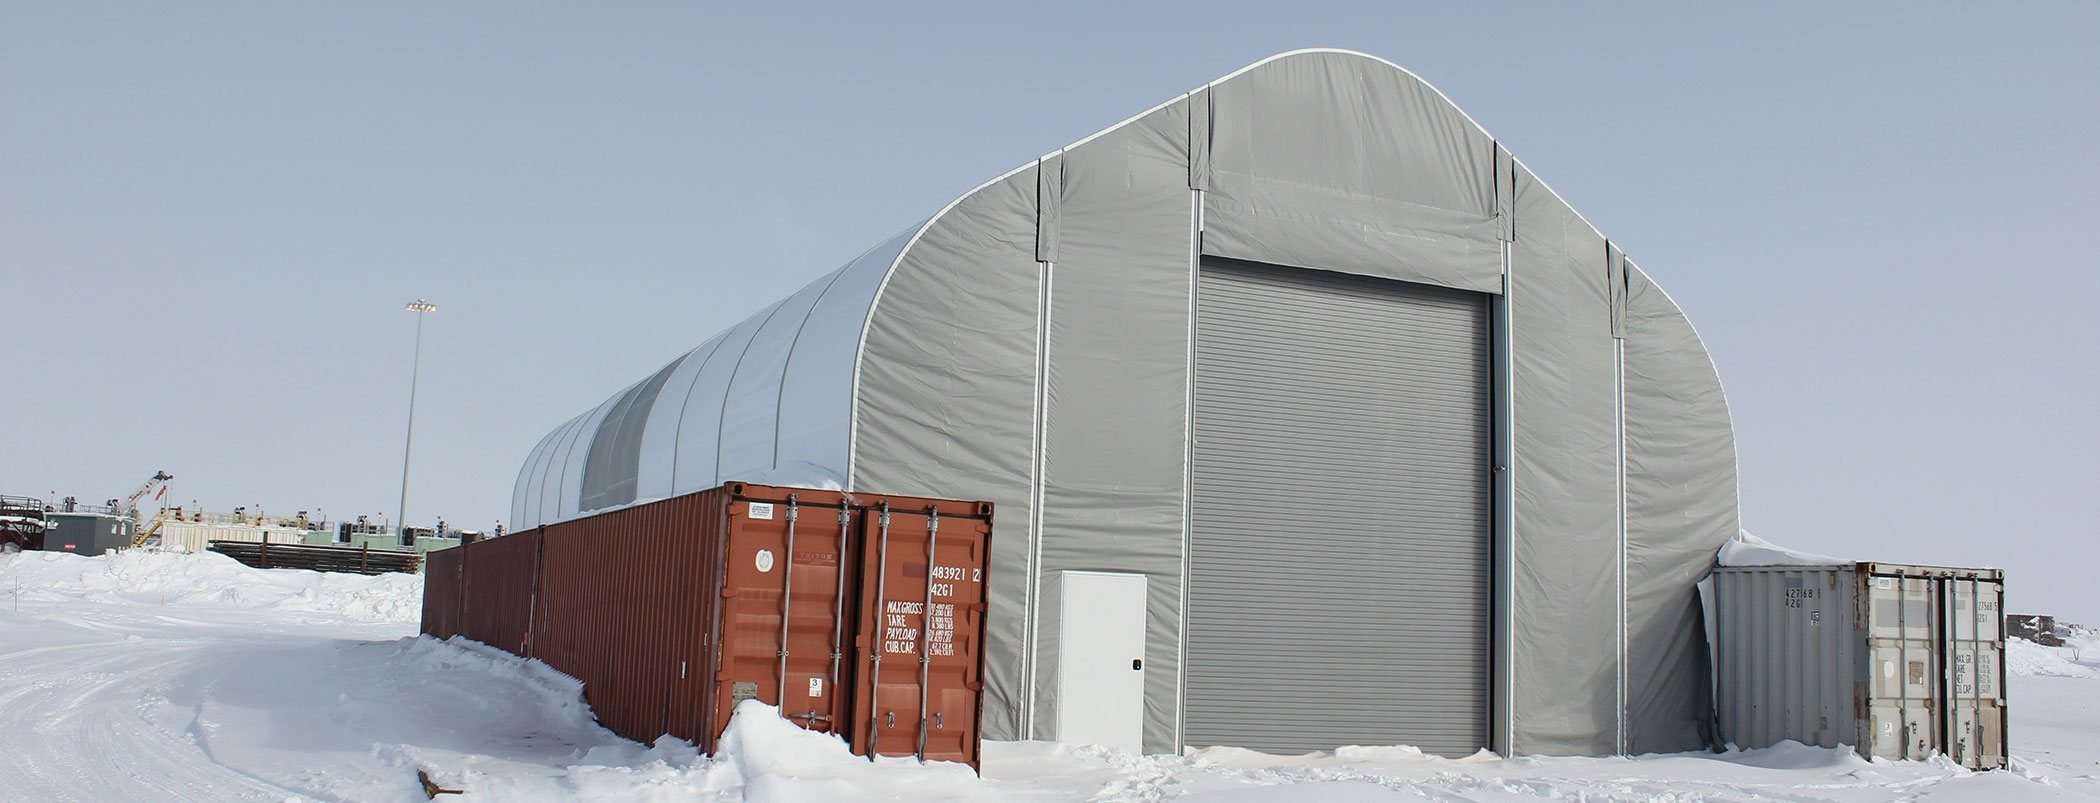 Alaska Structures building specialists were there to consult help assist and guide the crew in its erection/assembly. & Commercial Fabric Buildings | Alaska Structures